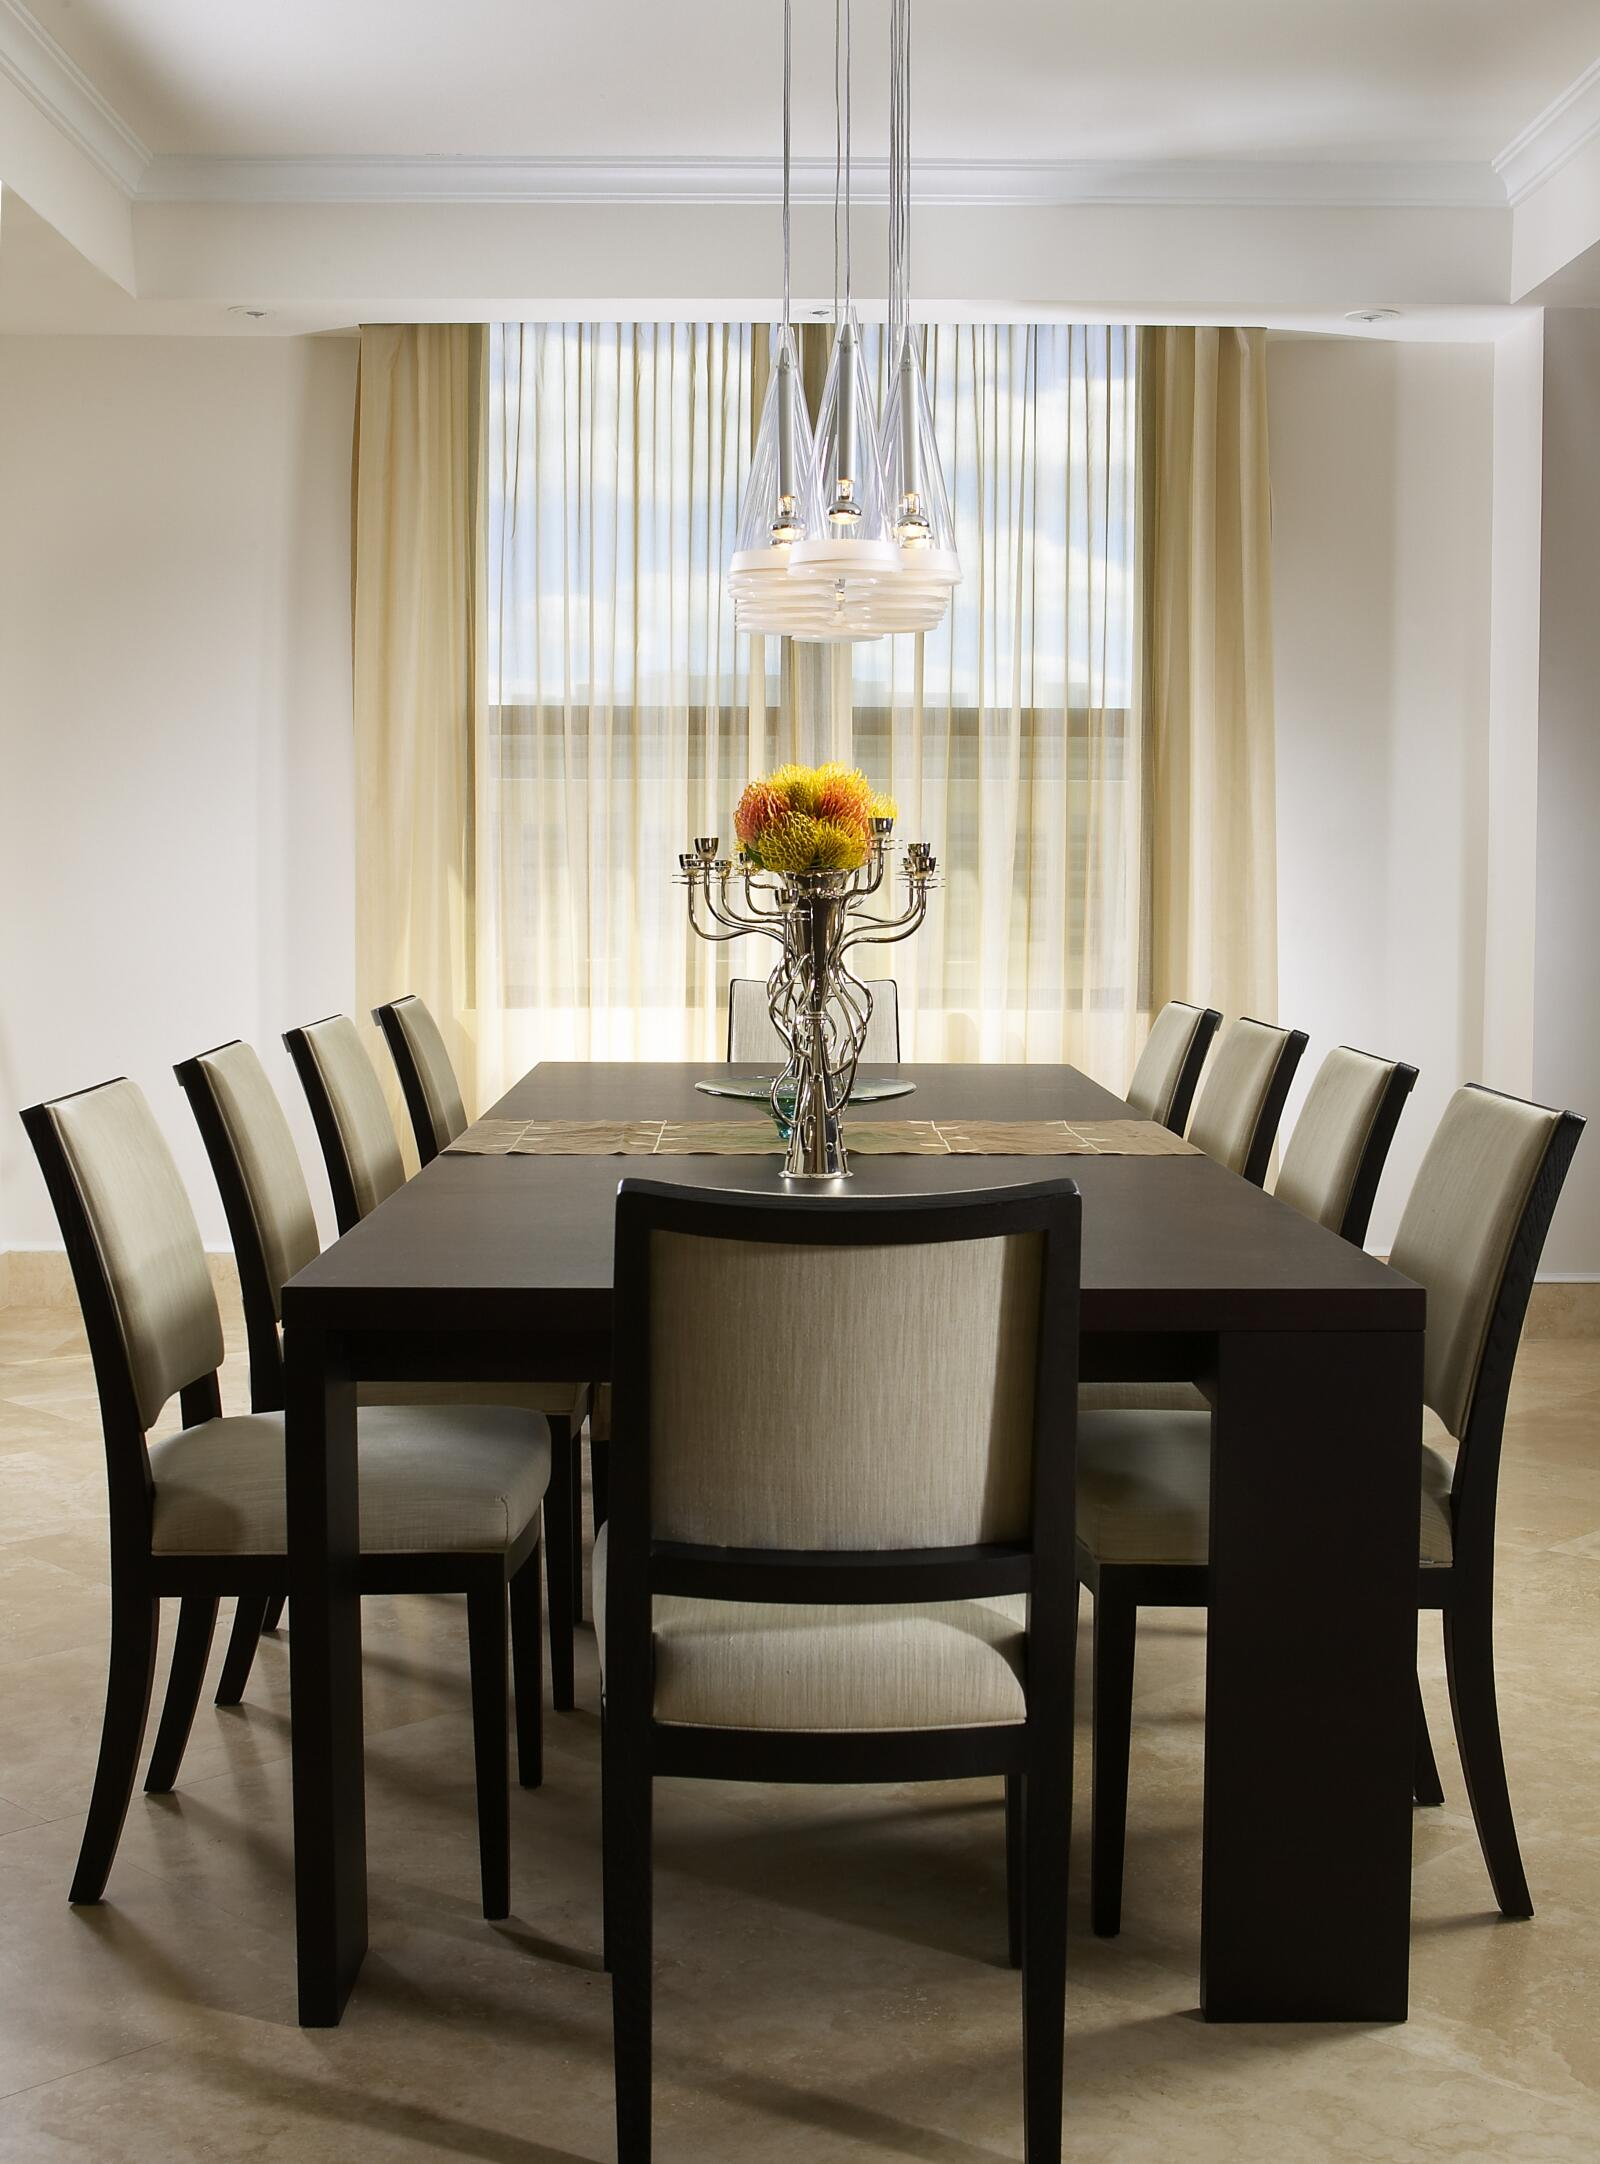 Modern dining room design ideas - 13